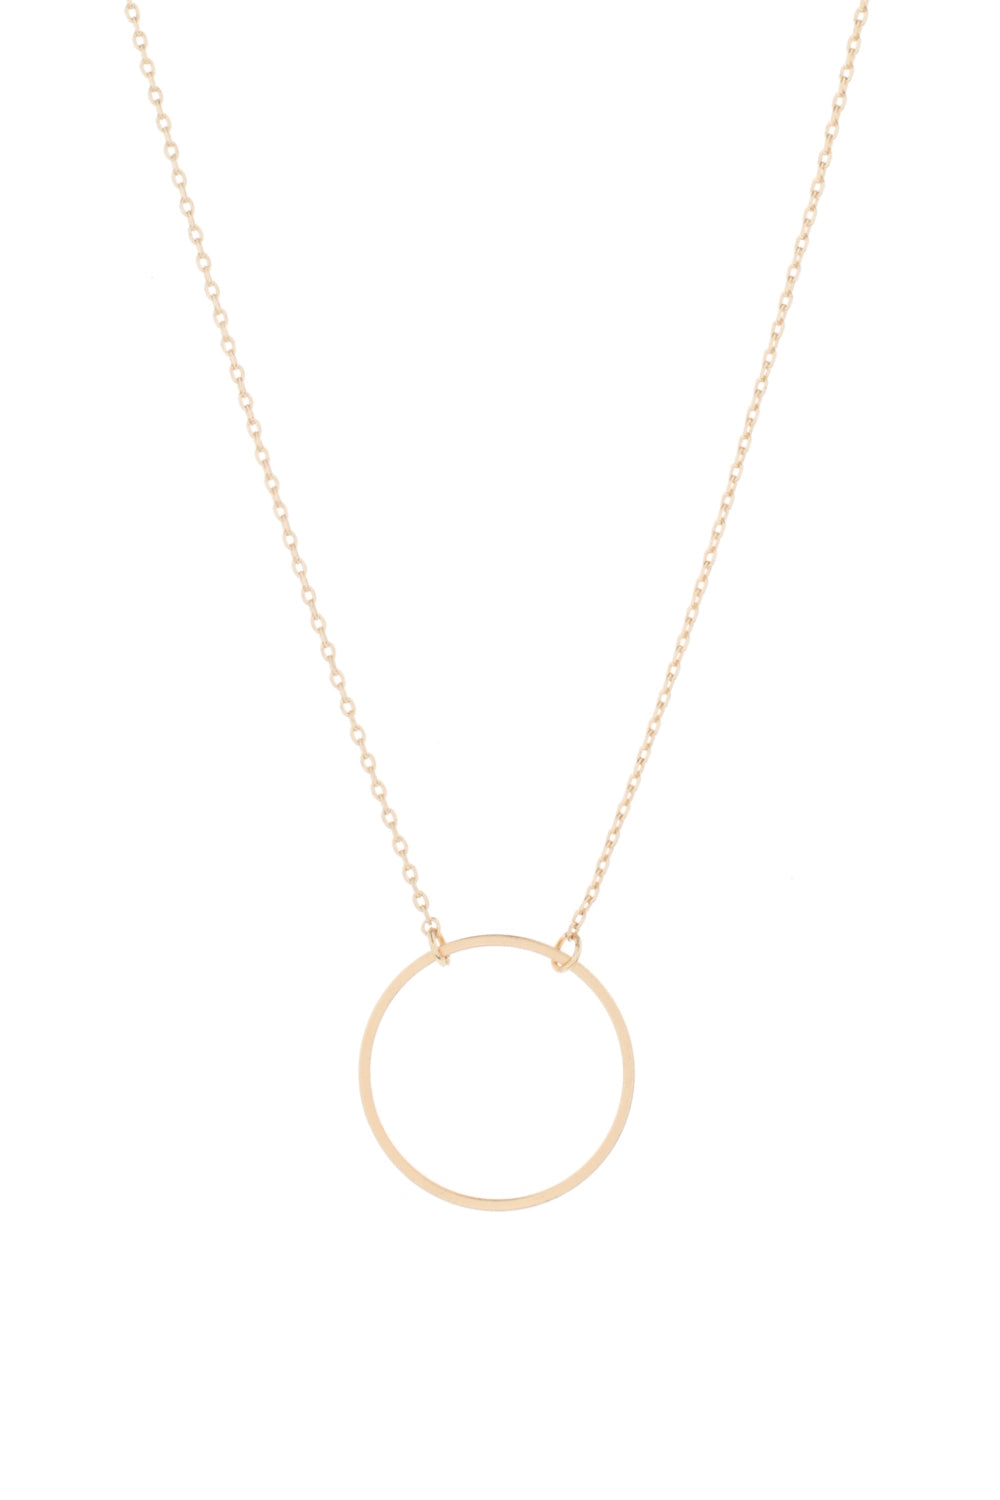 Type 1 Round And Round Necklace